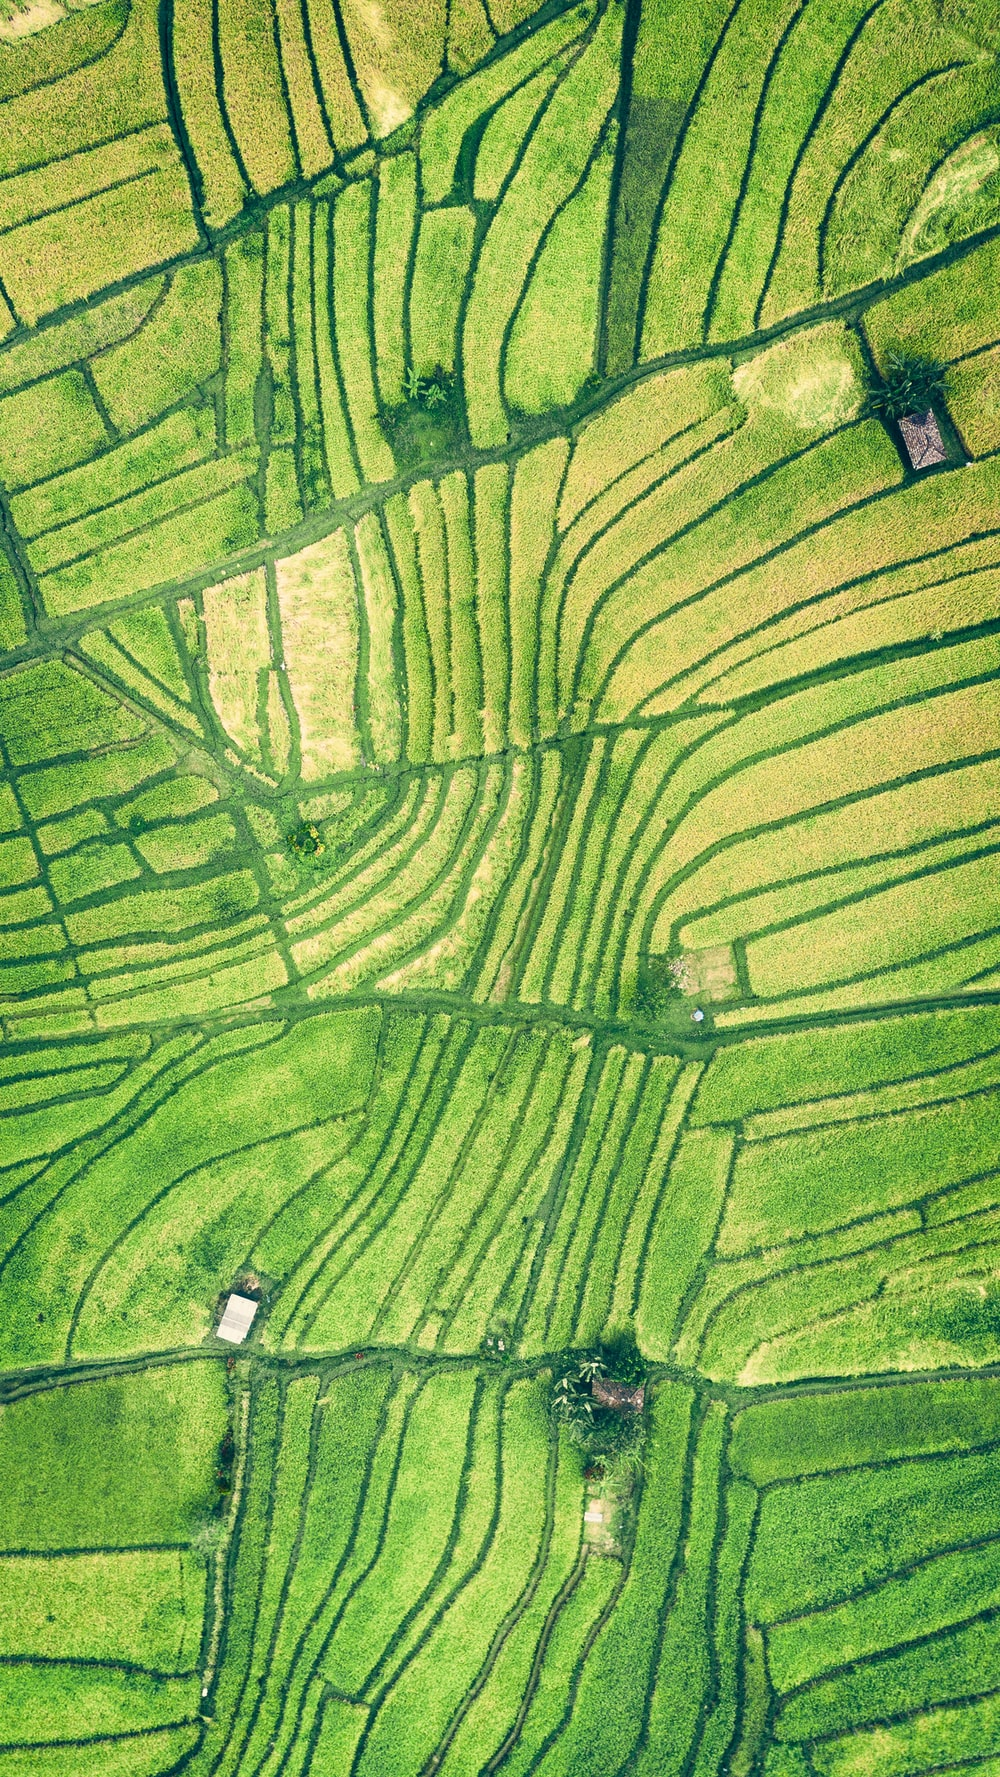 aerial photography of rice field